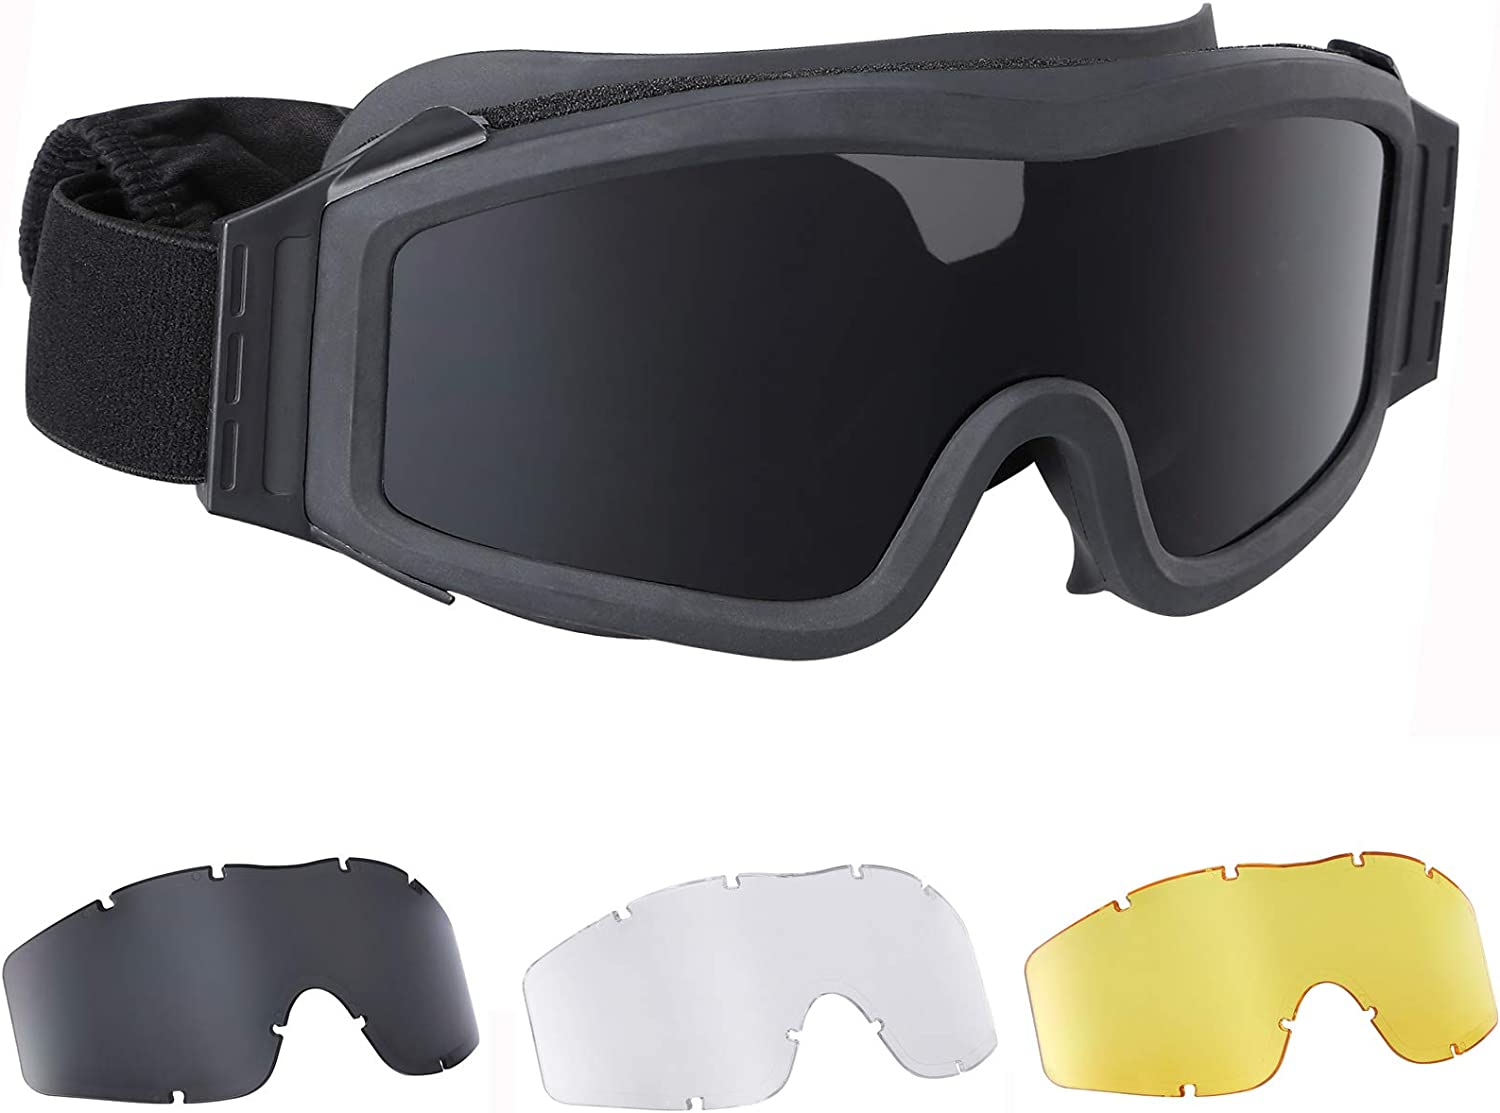 No-branded Tactical Goggles Airsoft Paintball Military Shooting Goggles UV Protection 3 Lens : Sports & Outdoors